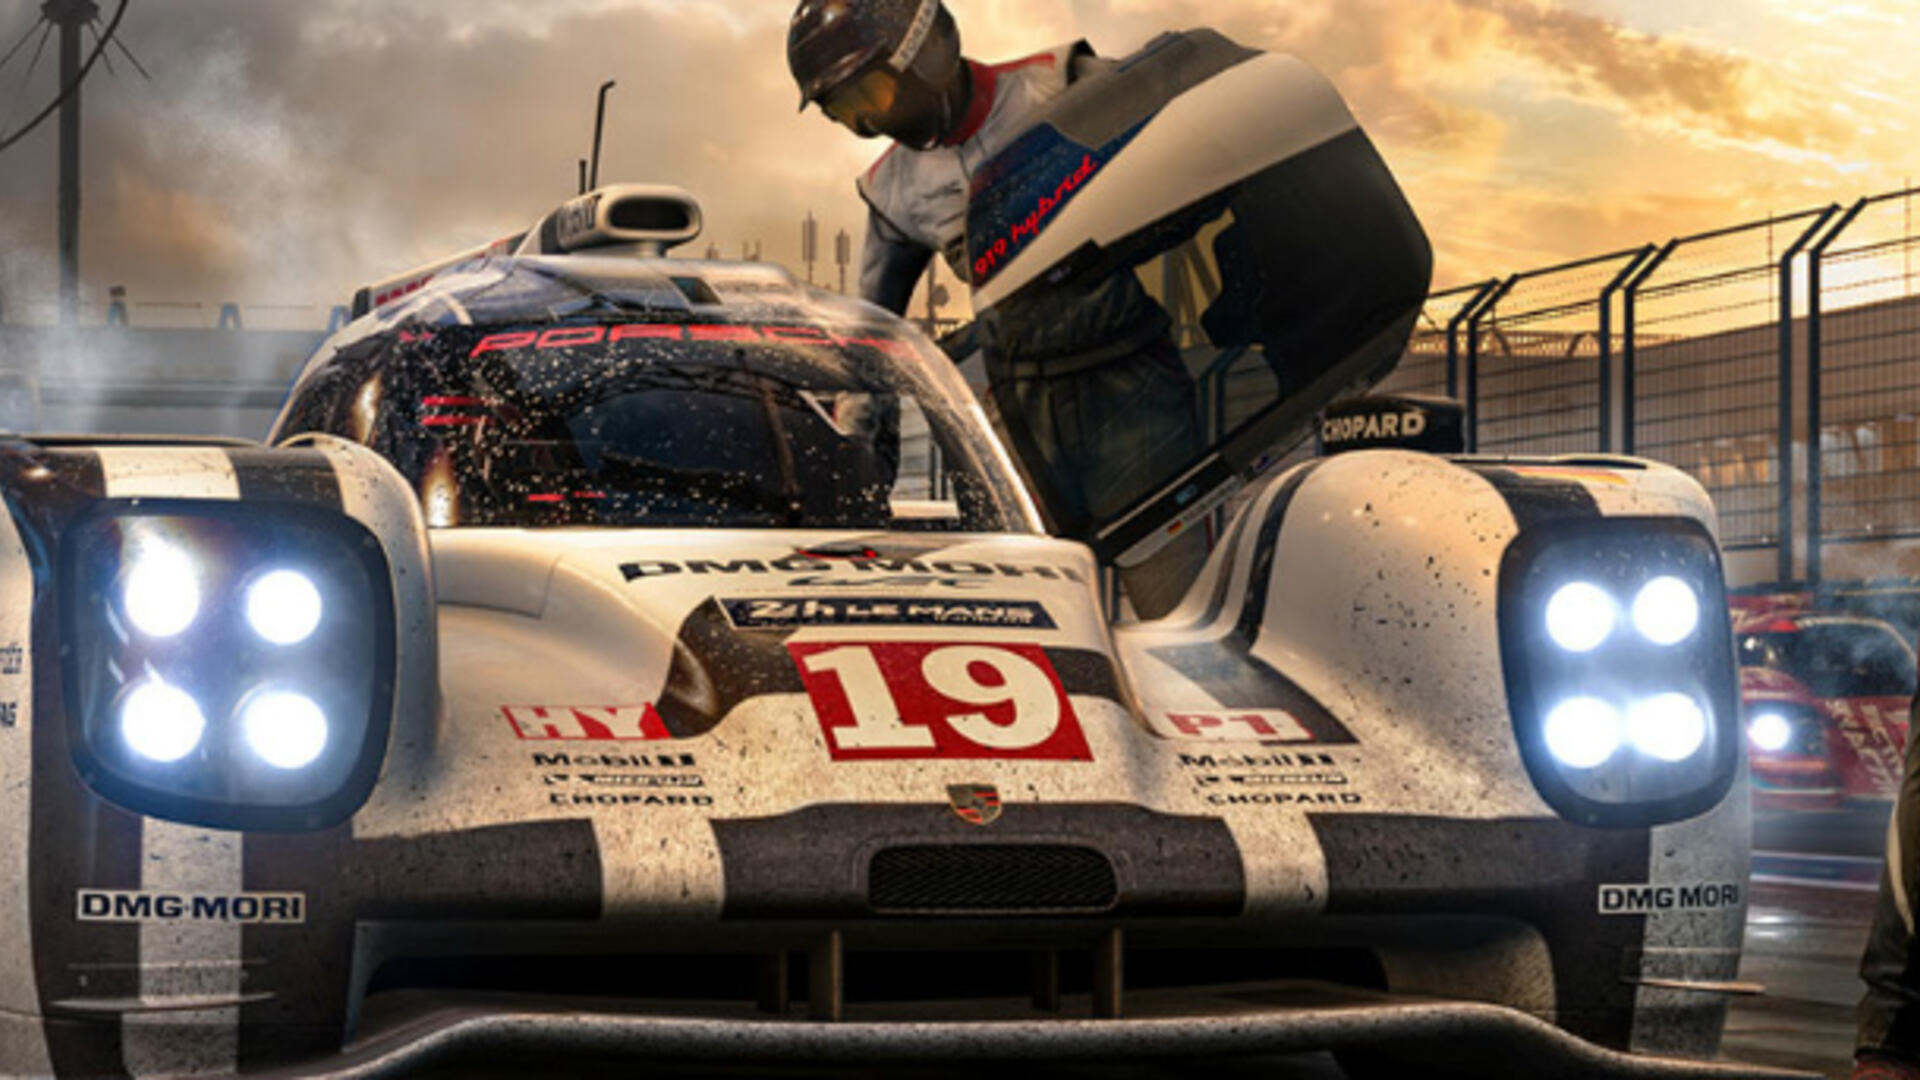 Forza Motorsport 7's PC Pre-load Struggles On the Windows Store